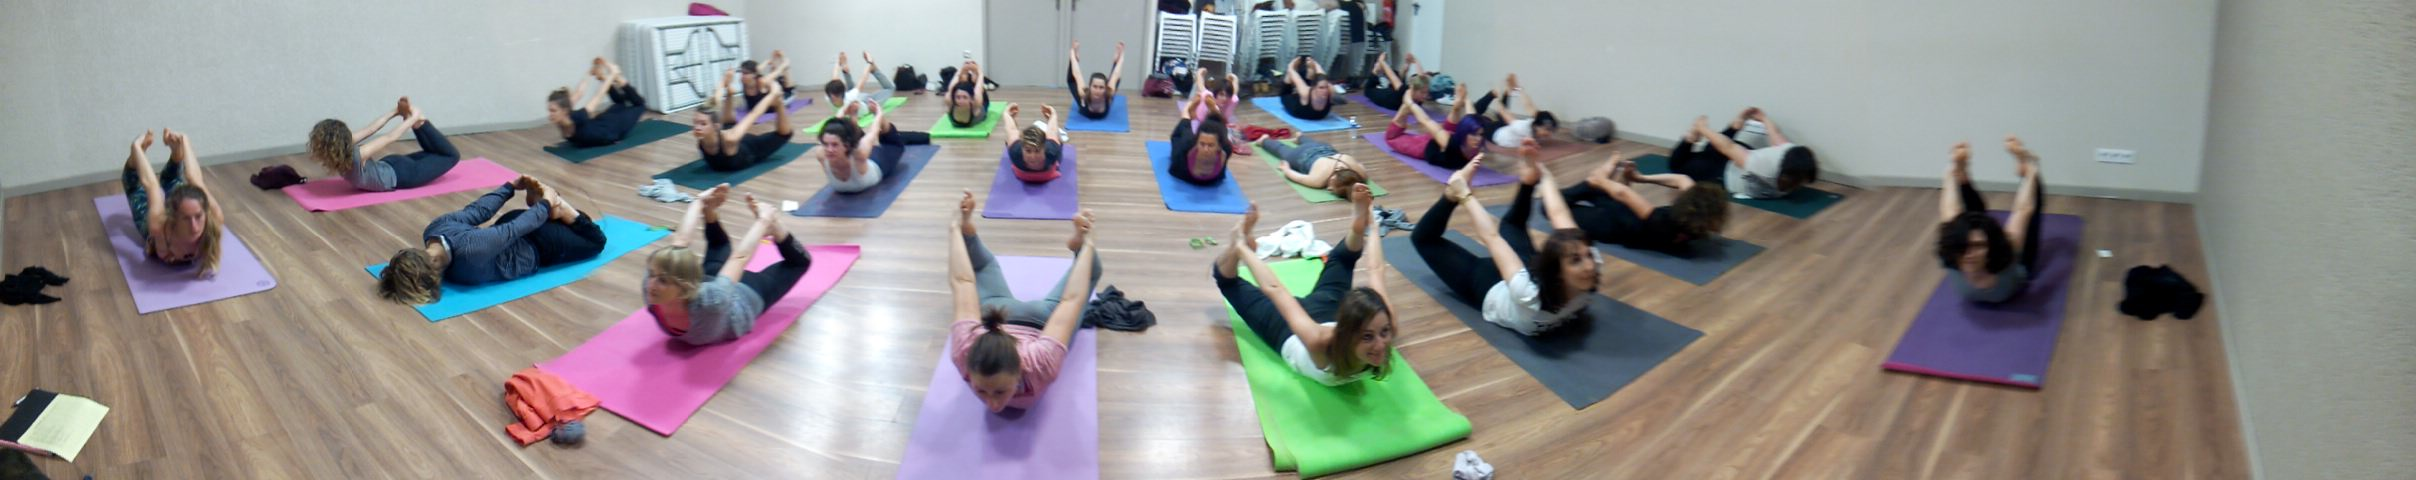 yoga-collectif3.jgp